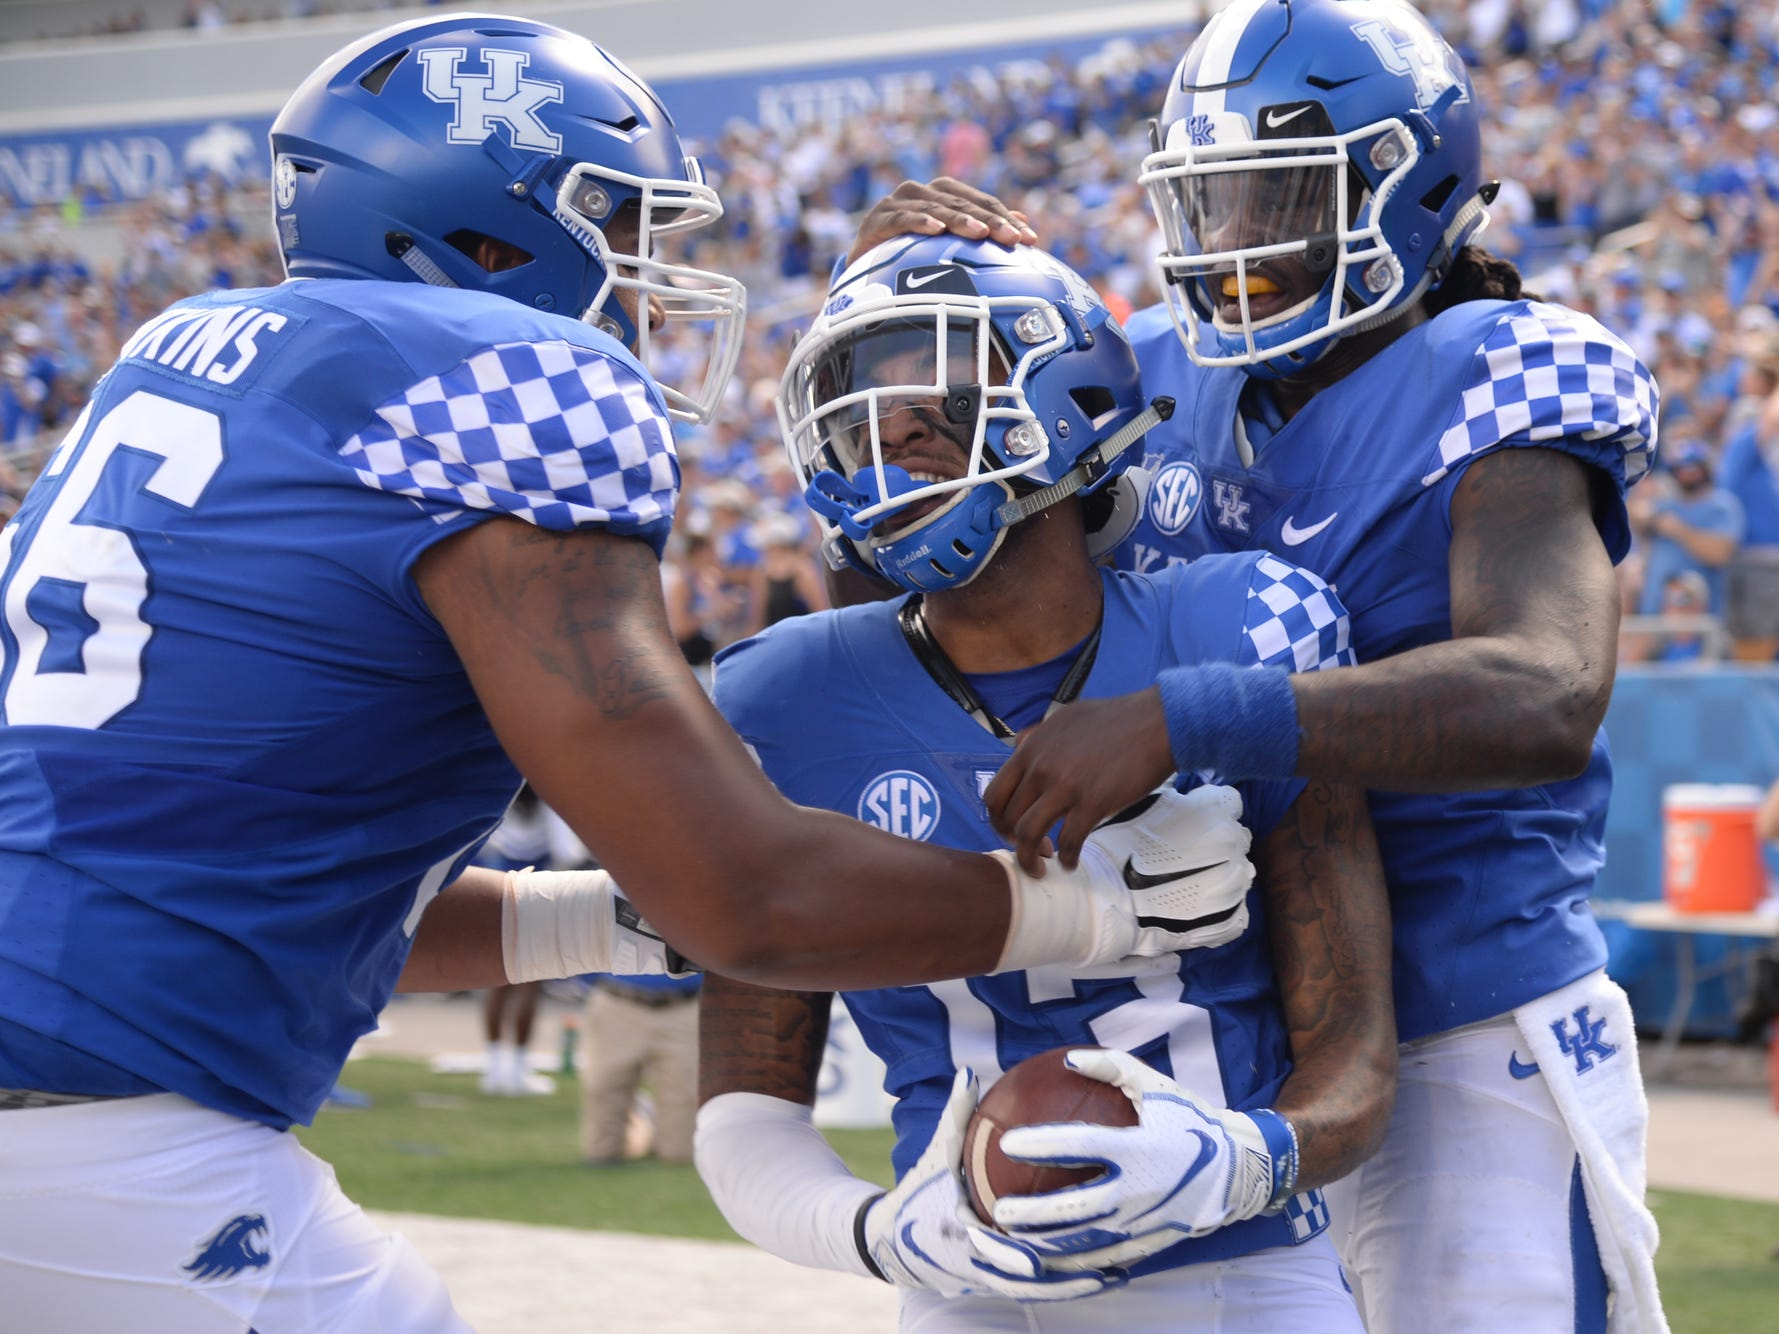 UK wide receiver Zy'Aire Hughes celebrates a touchdown run during the University of Kentucky football game against Murray State at Kroger Field in Lexington, Kentucky, on Saturday, Sept. 15, 2018.